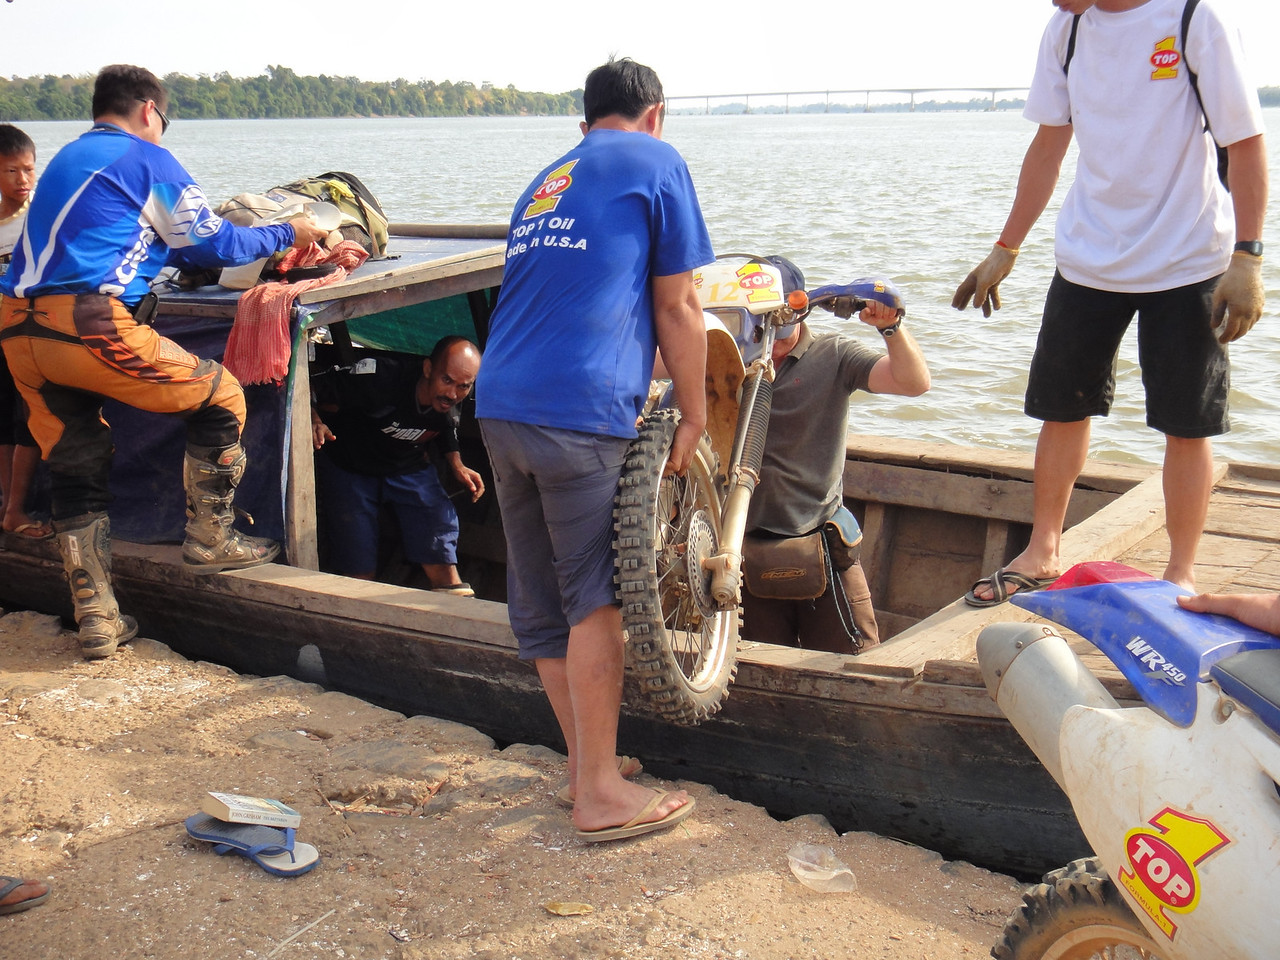 Loading bikes for the ride up the Mekong.